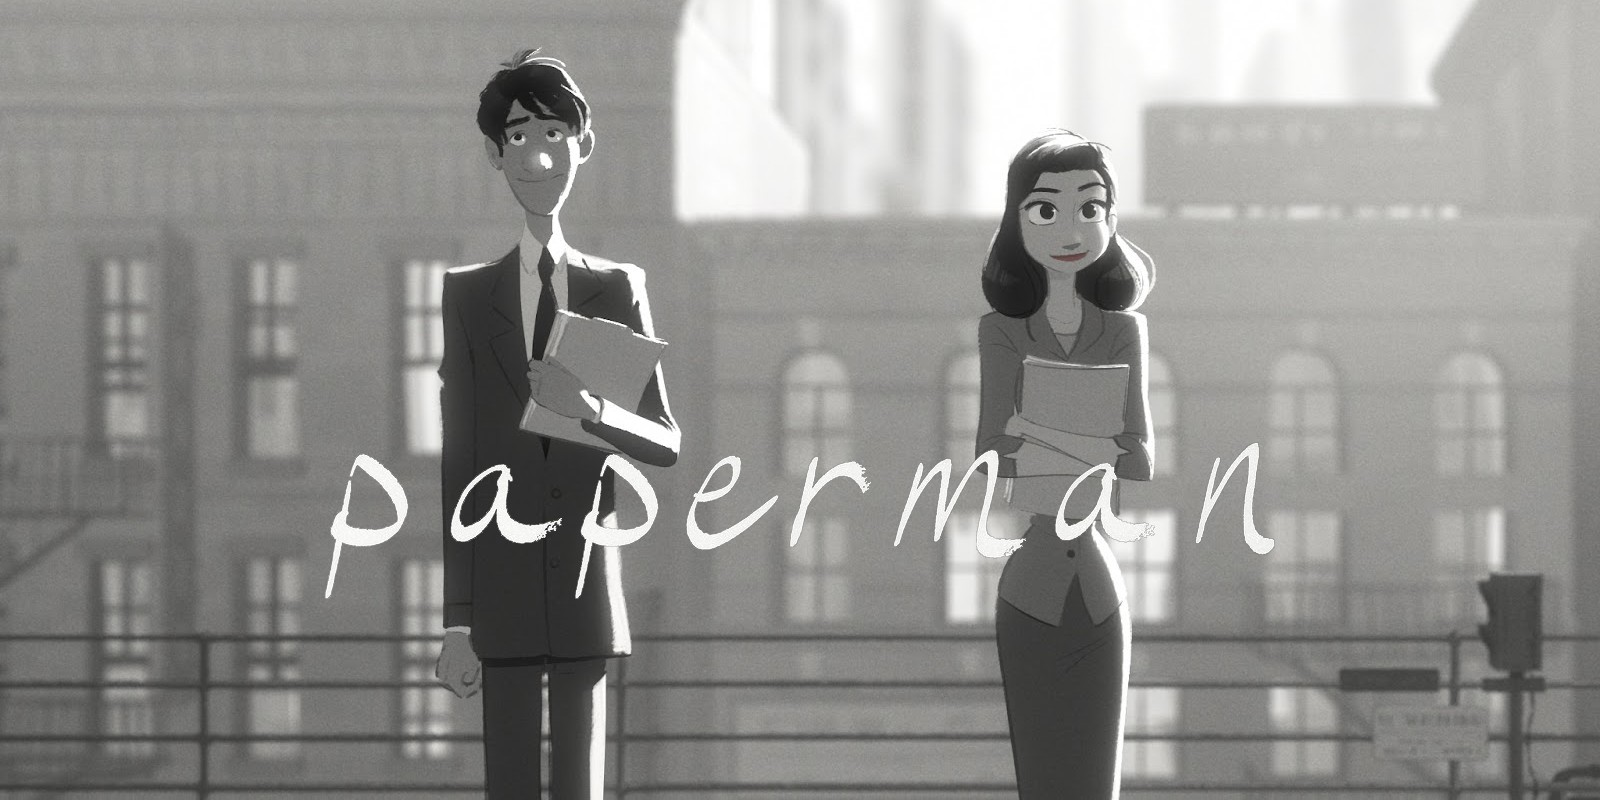 Paperman Disney Short Animation - Directed by John Kahrs